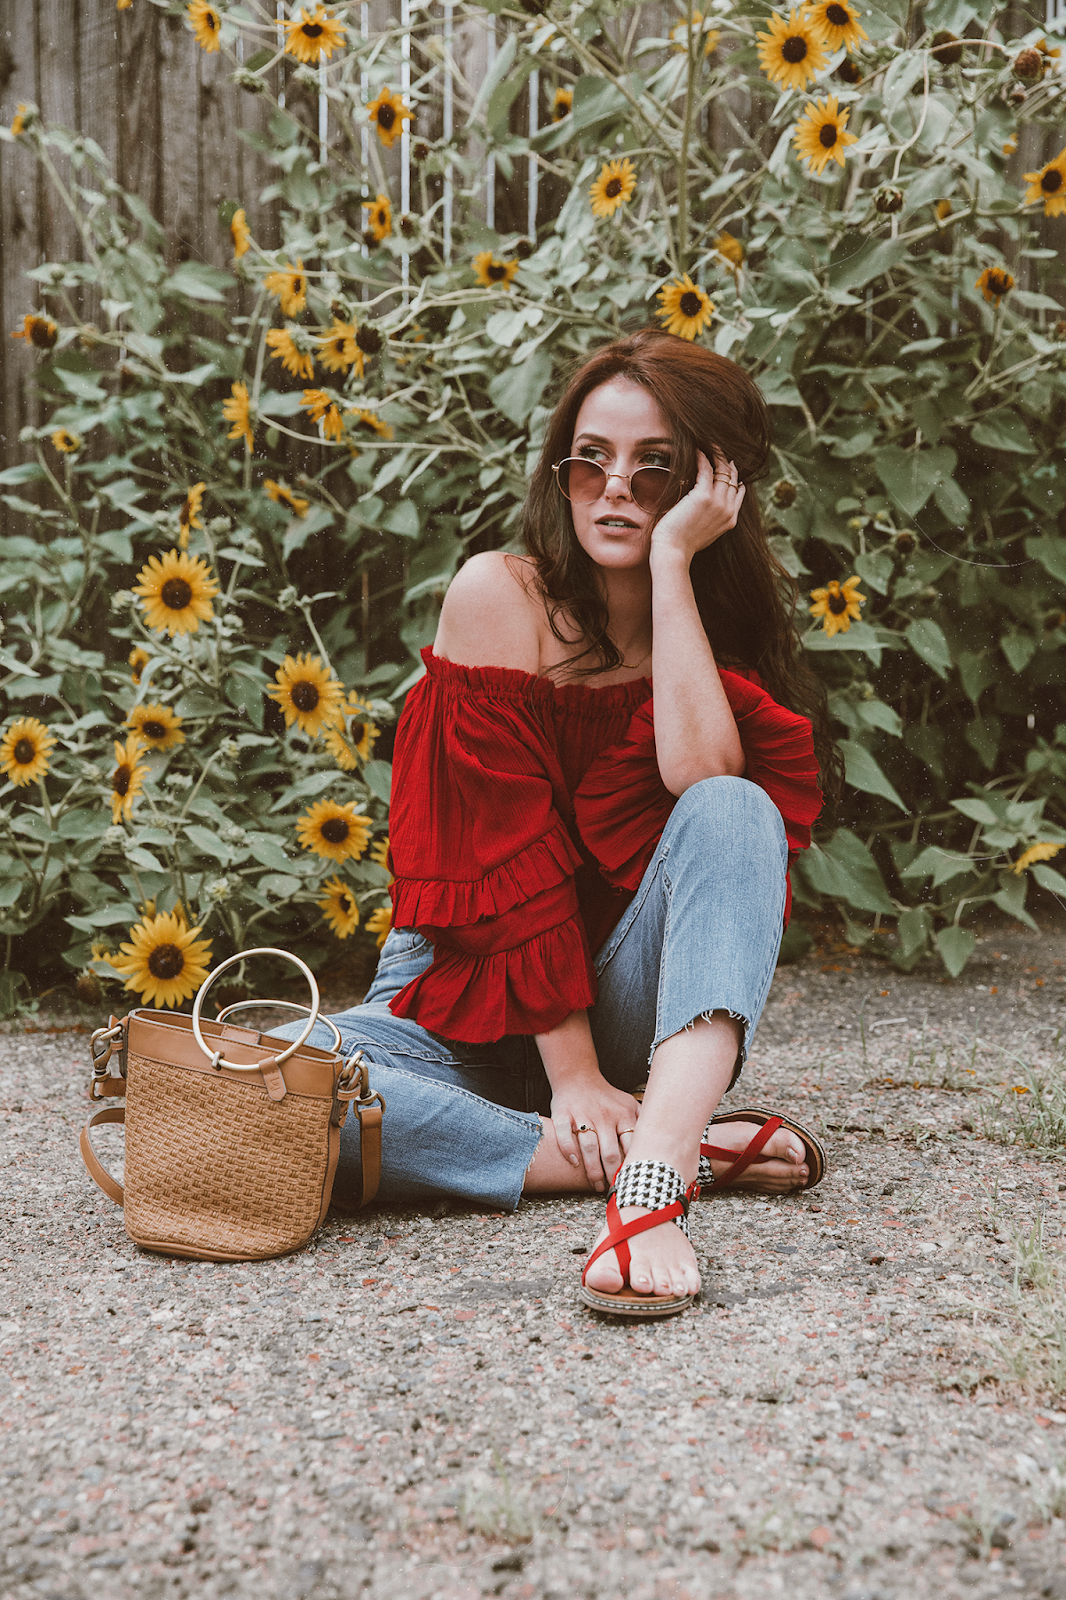 shelly stuckman, ArizonaGirl.com, how to style bohemian, fashion blogger, sunflowers, Corkys Footwear, Elle & Jae Gypset, Sans Souci Stores, STS Blue, off the shoulder blouse